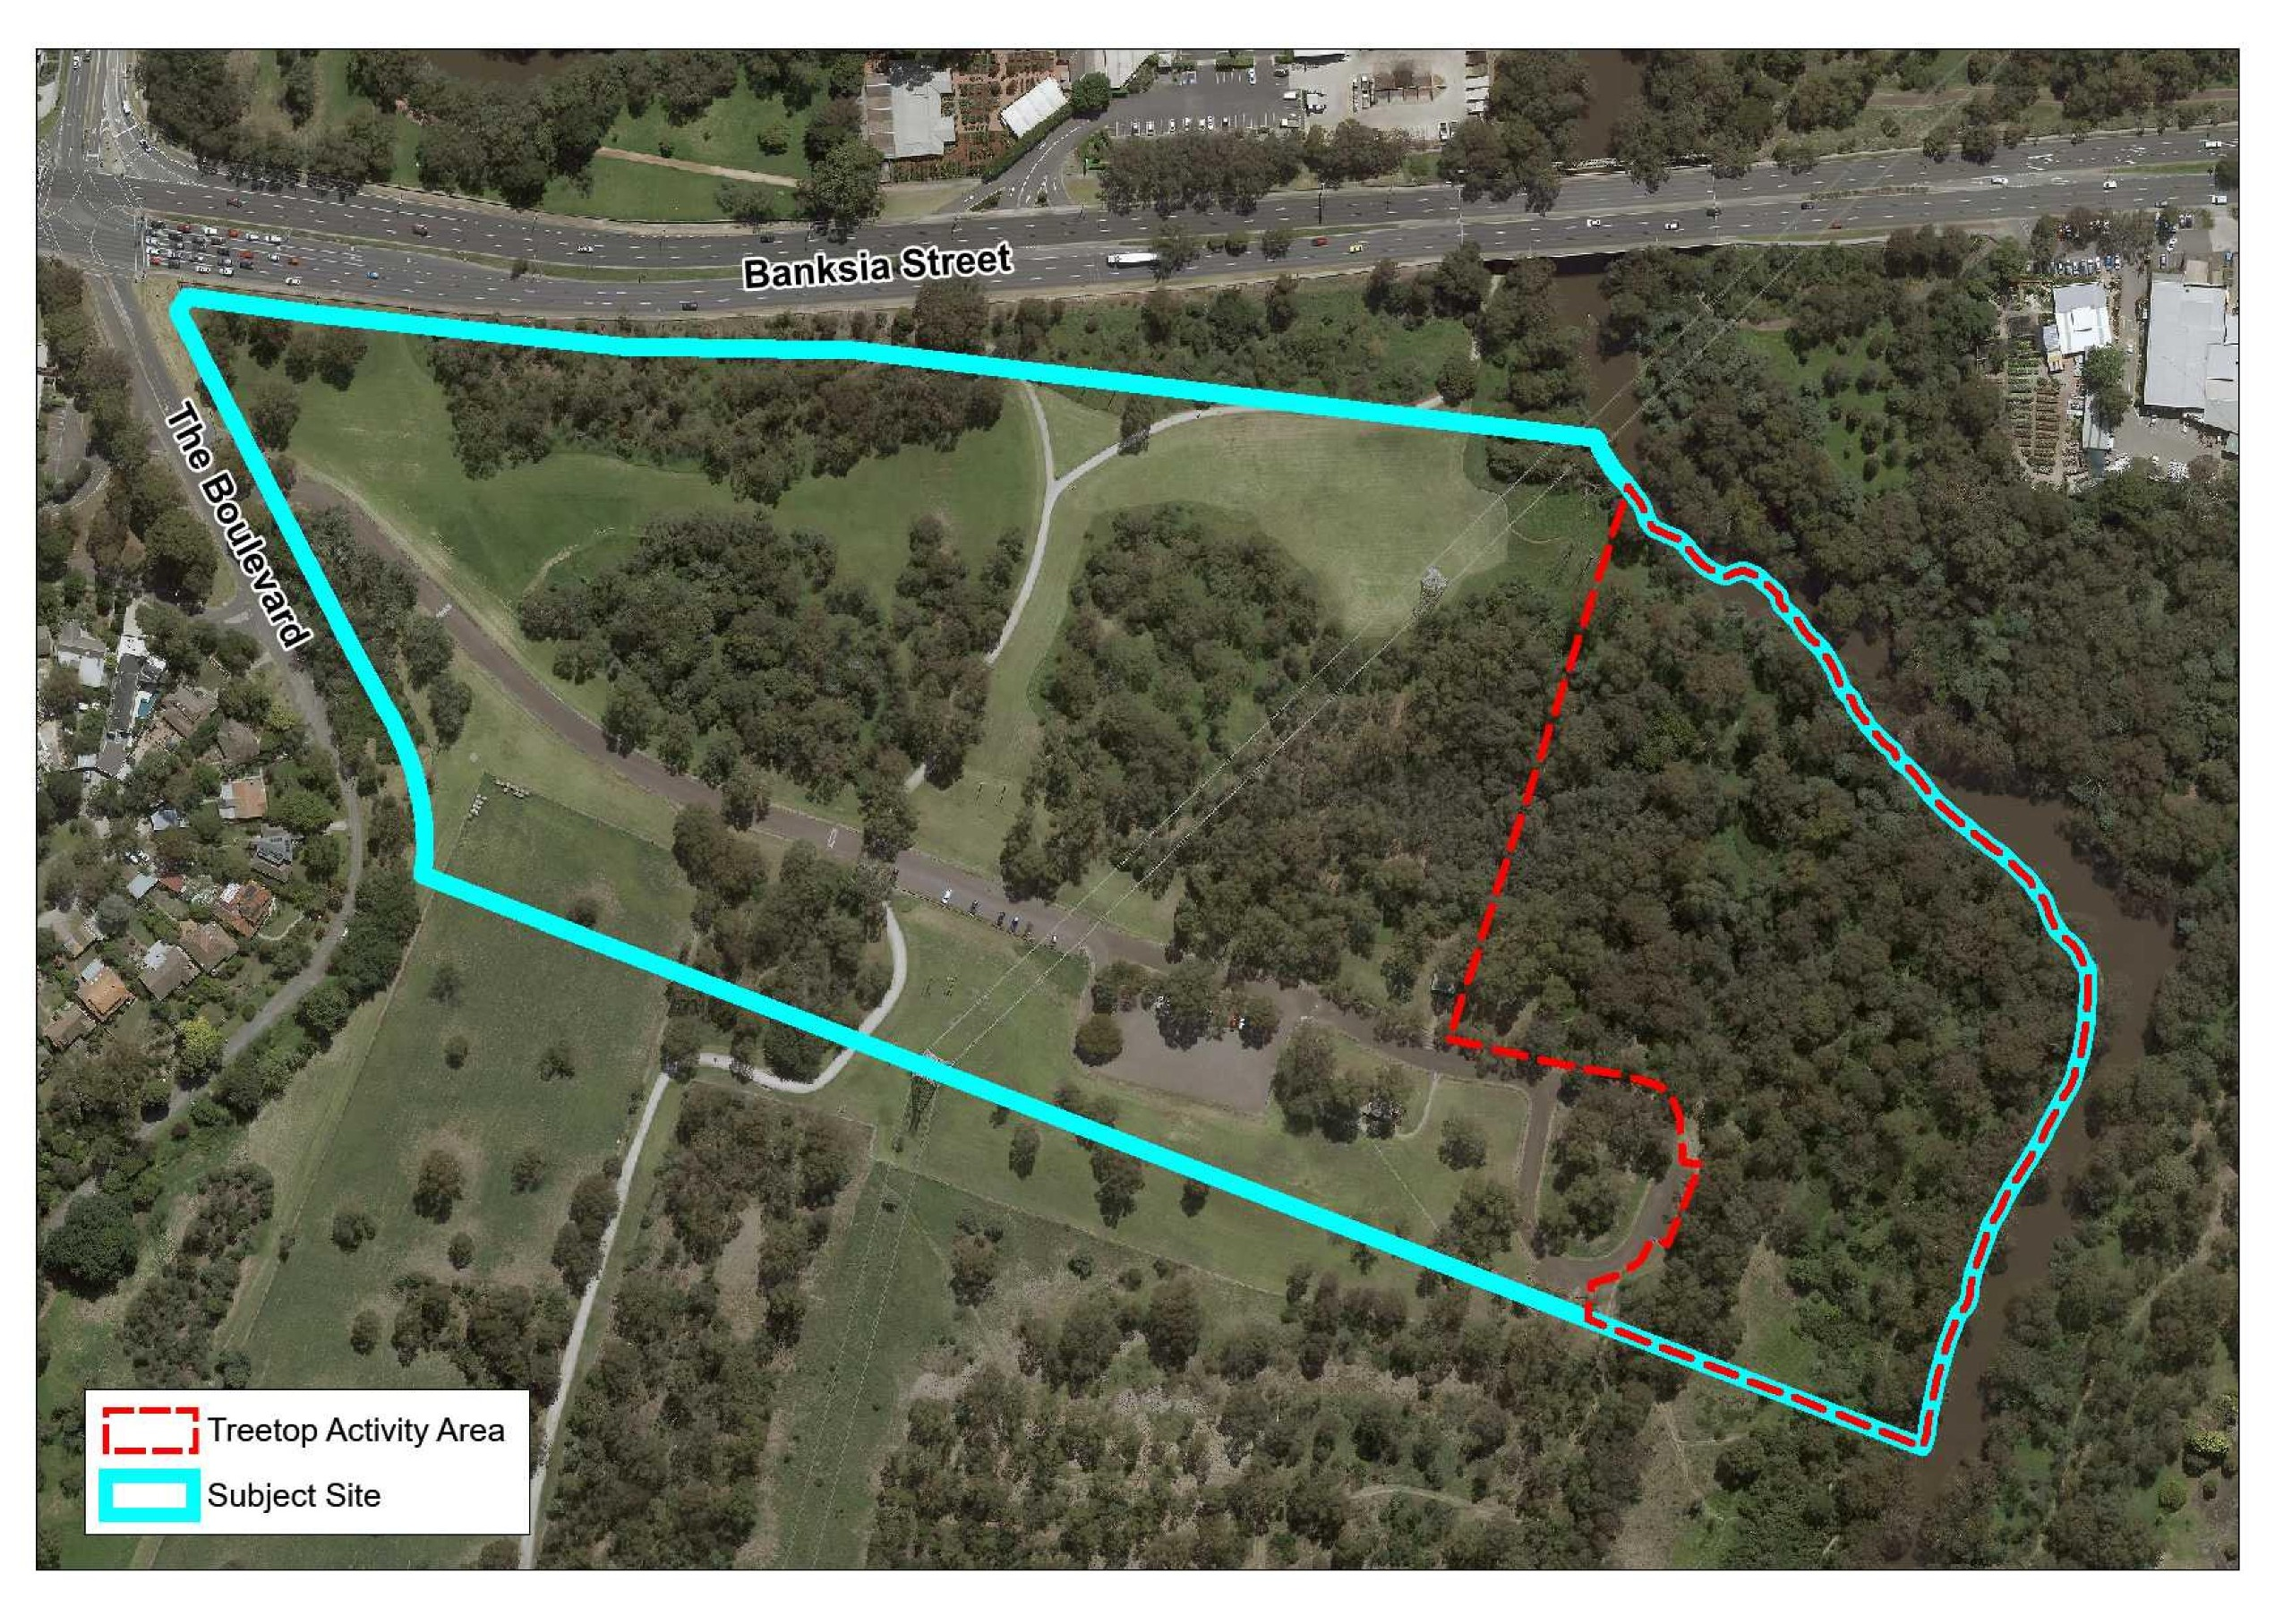 Site map with proposed treetop activity area